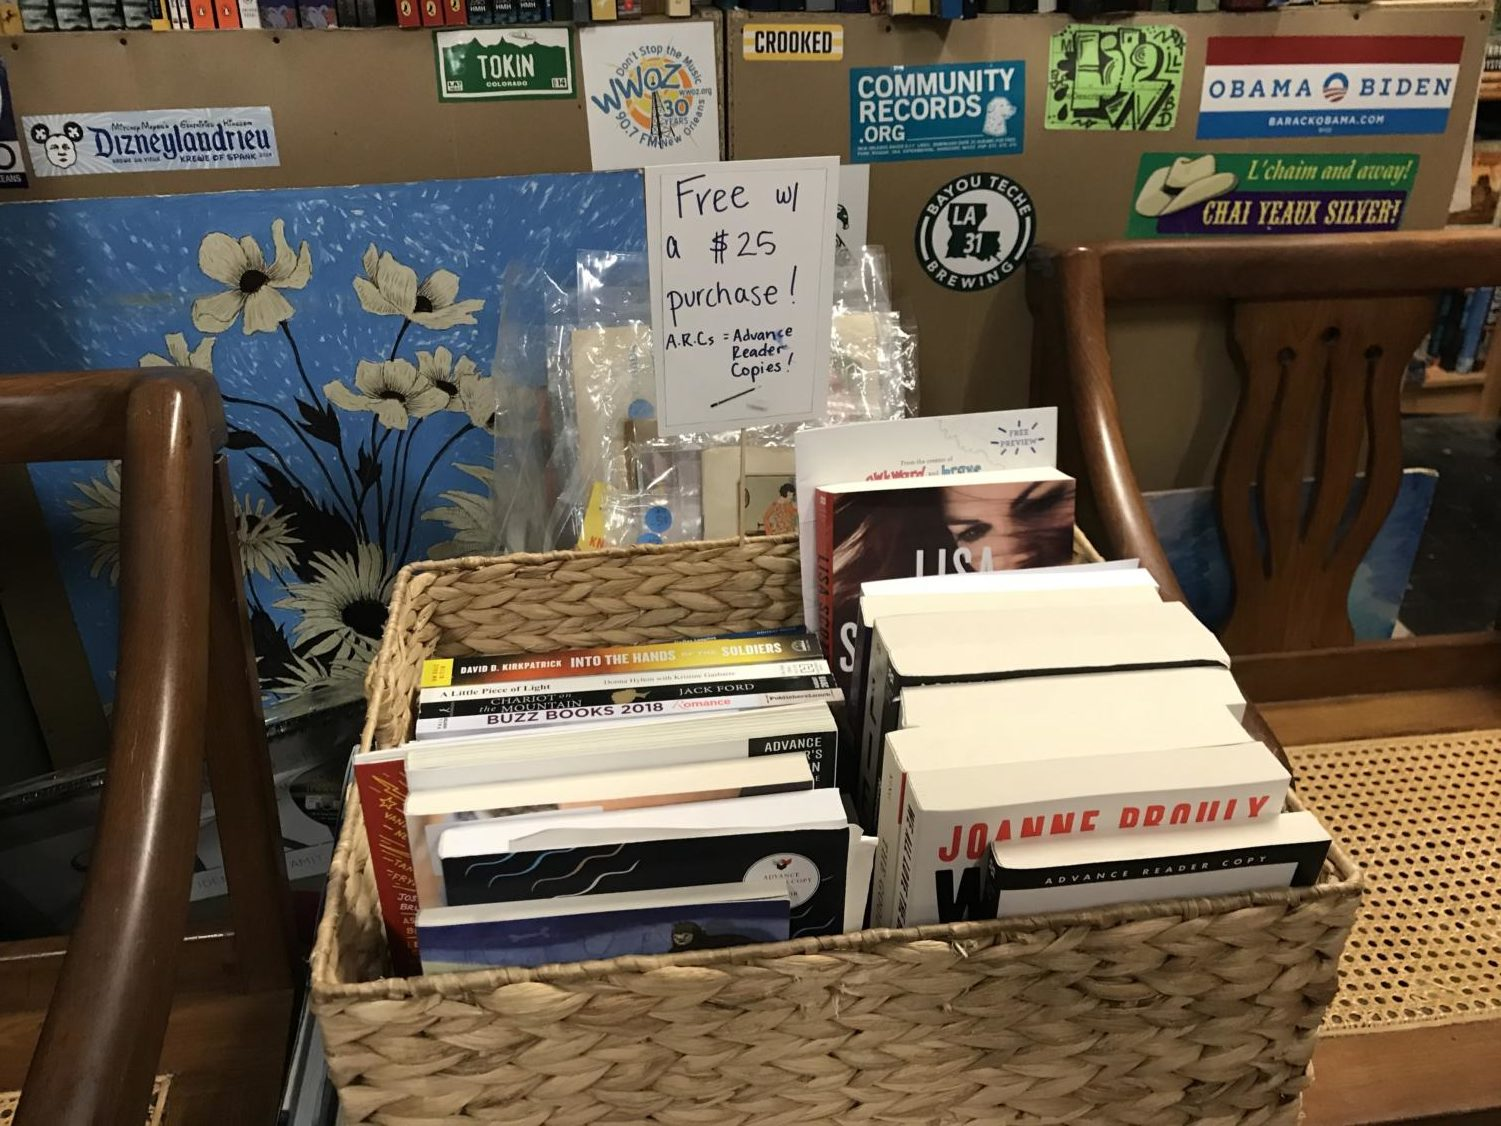 A+bin+in+the+back+room+offers+free+advanced+reader+copies+to+customers+who+spend+%2425+or+more+on+books+and+literary+treasures.+Photo+credit%3A+Rose+Wagner